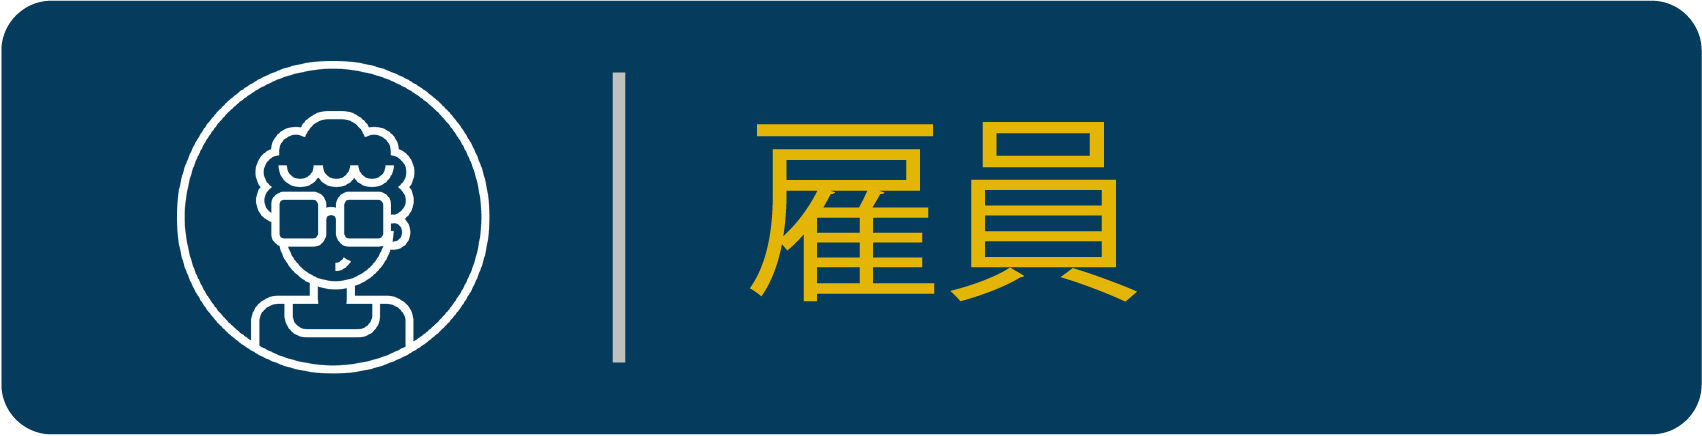 Chinese Employees Icon